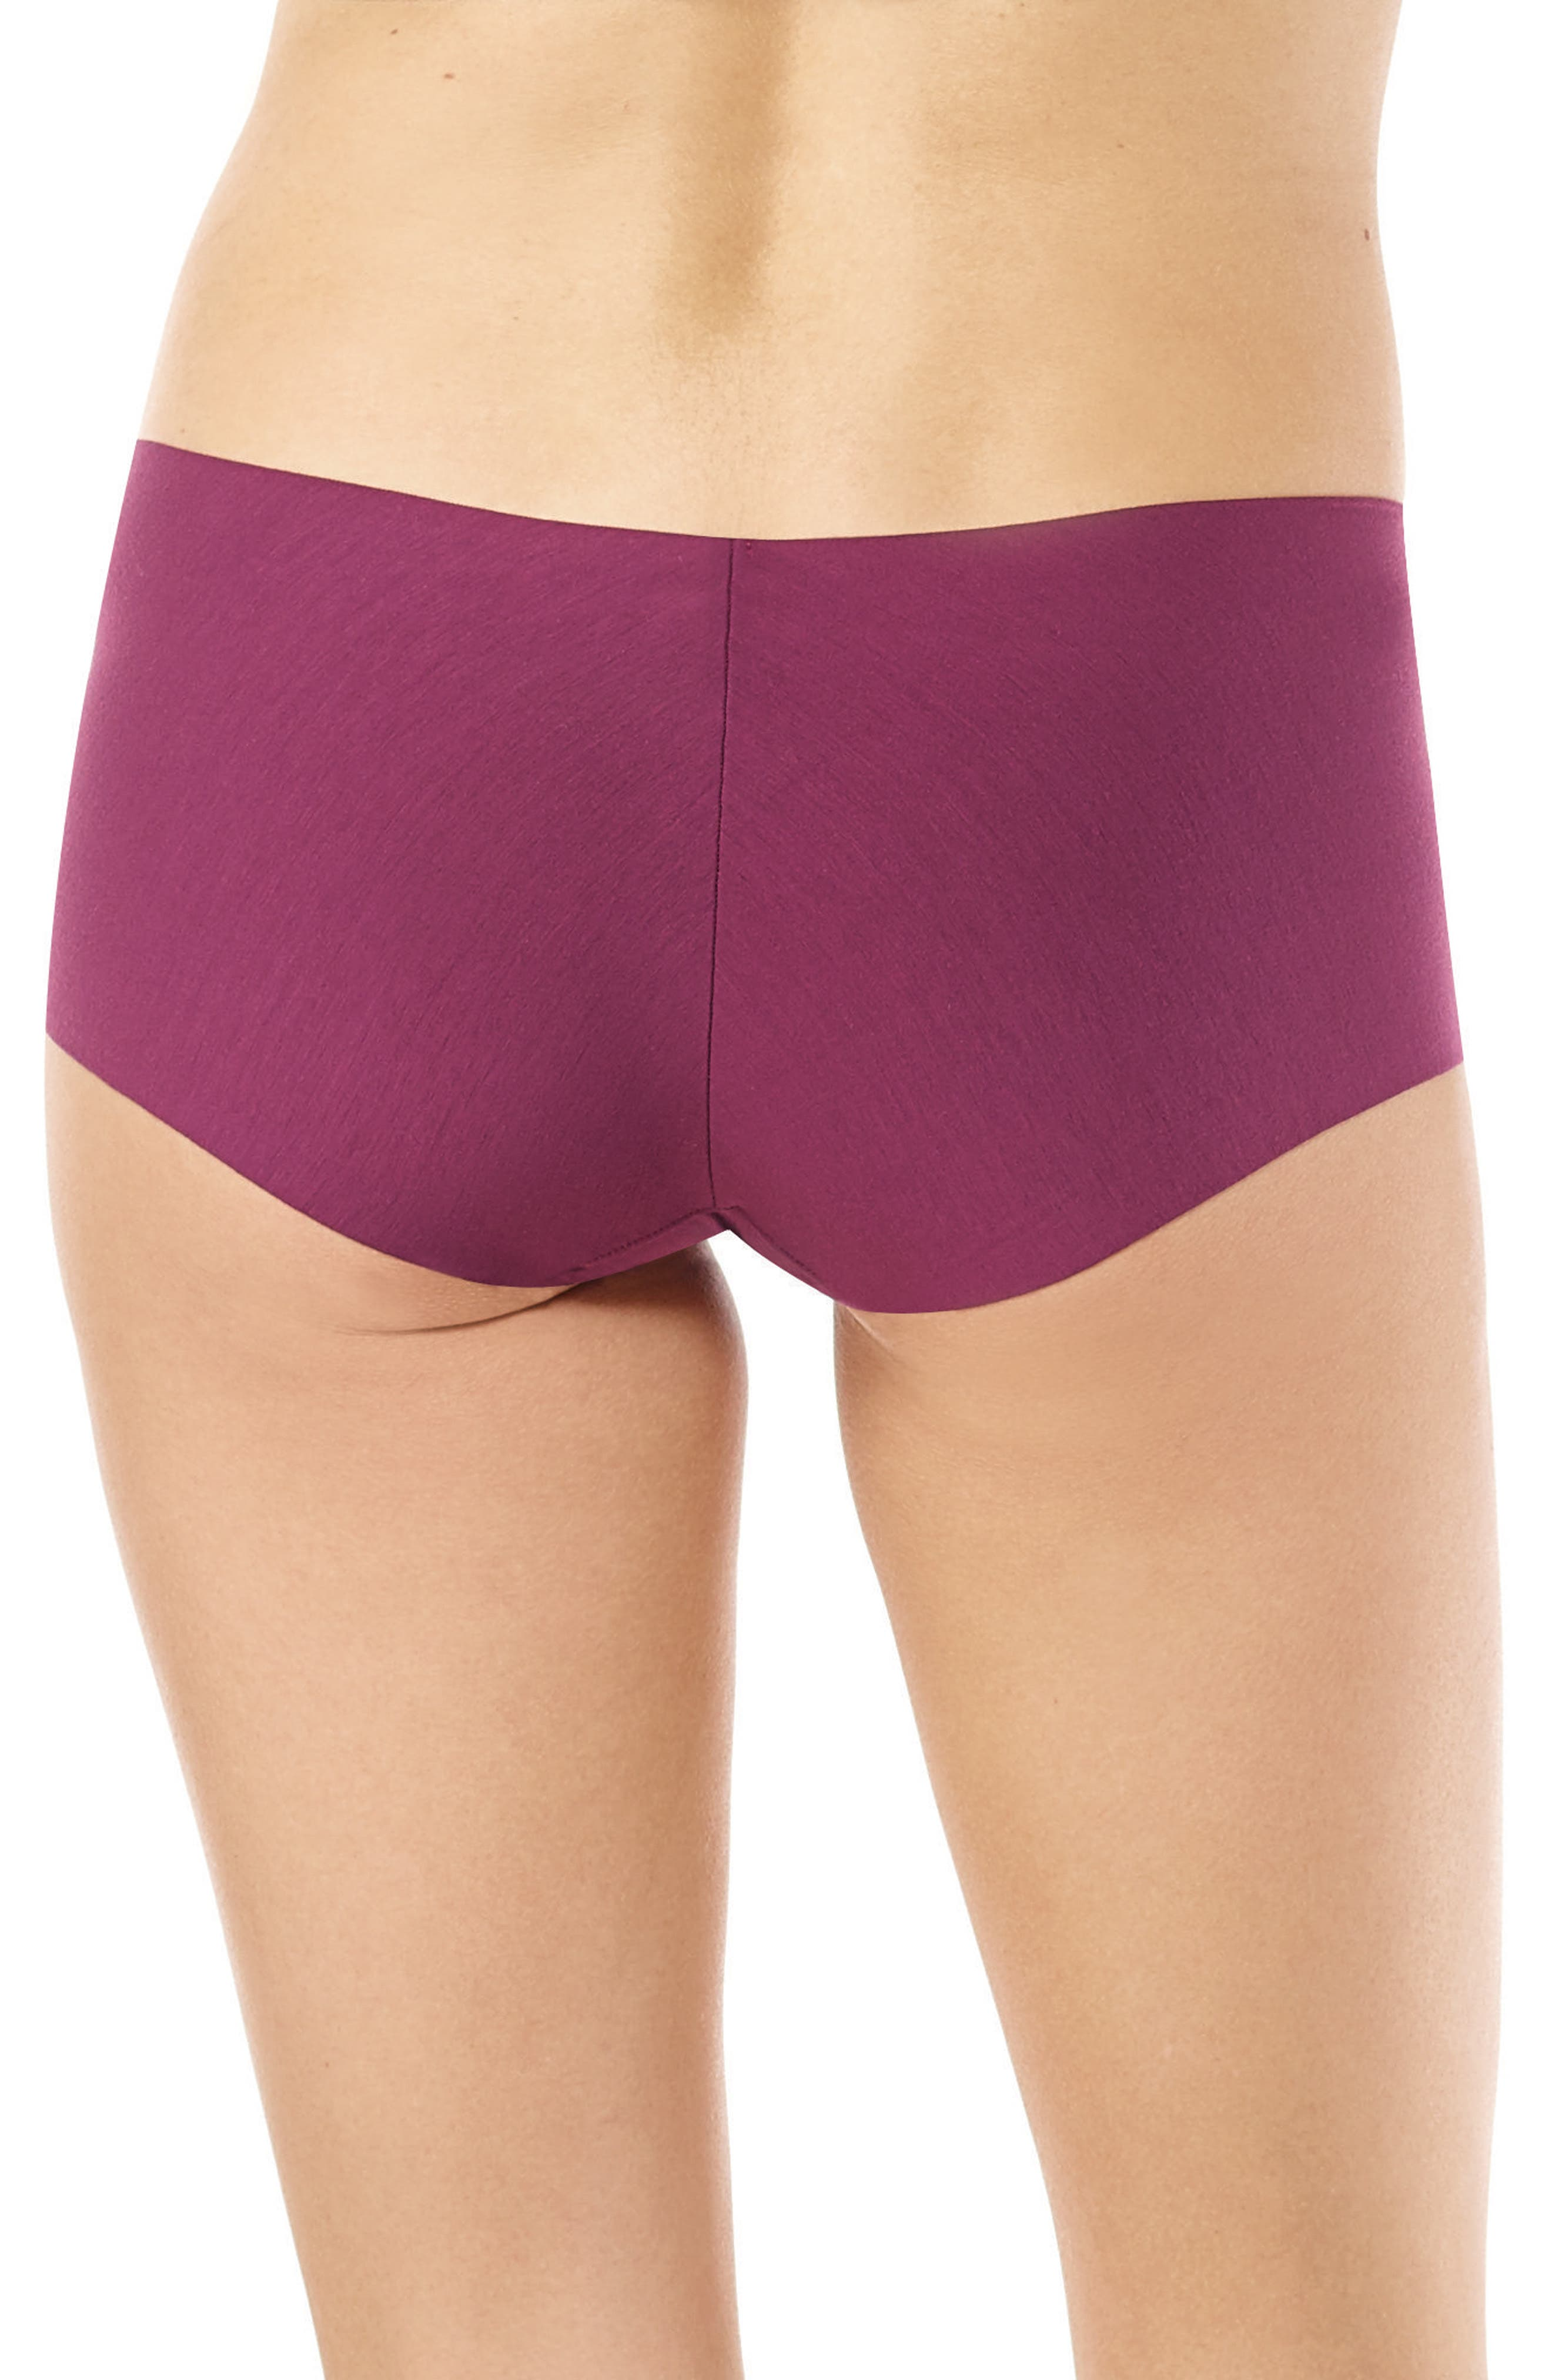 Butter Seamless Hipster Panties,                             Alternate thumbnail 20, color,